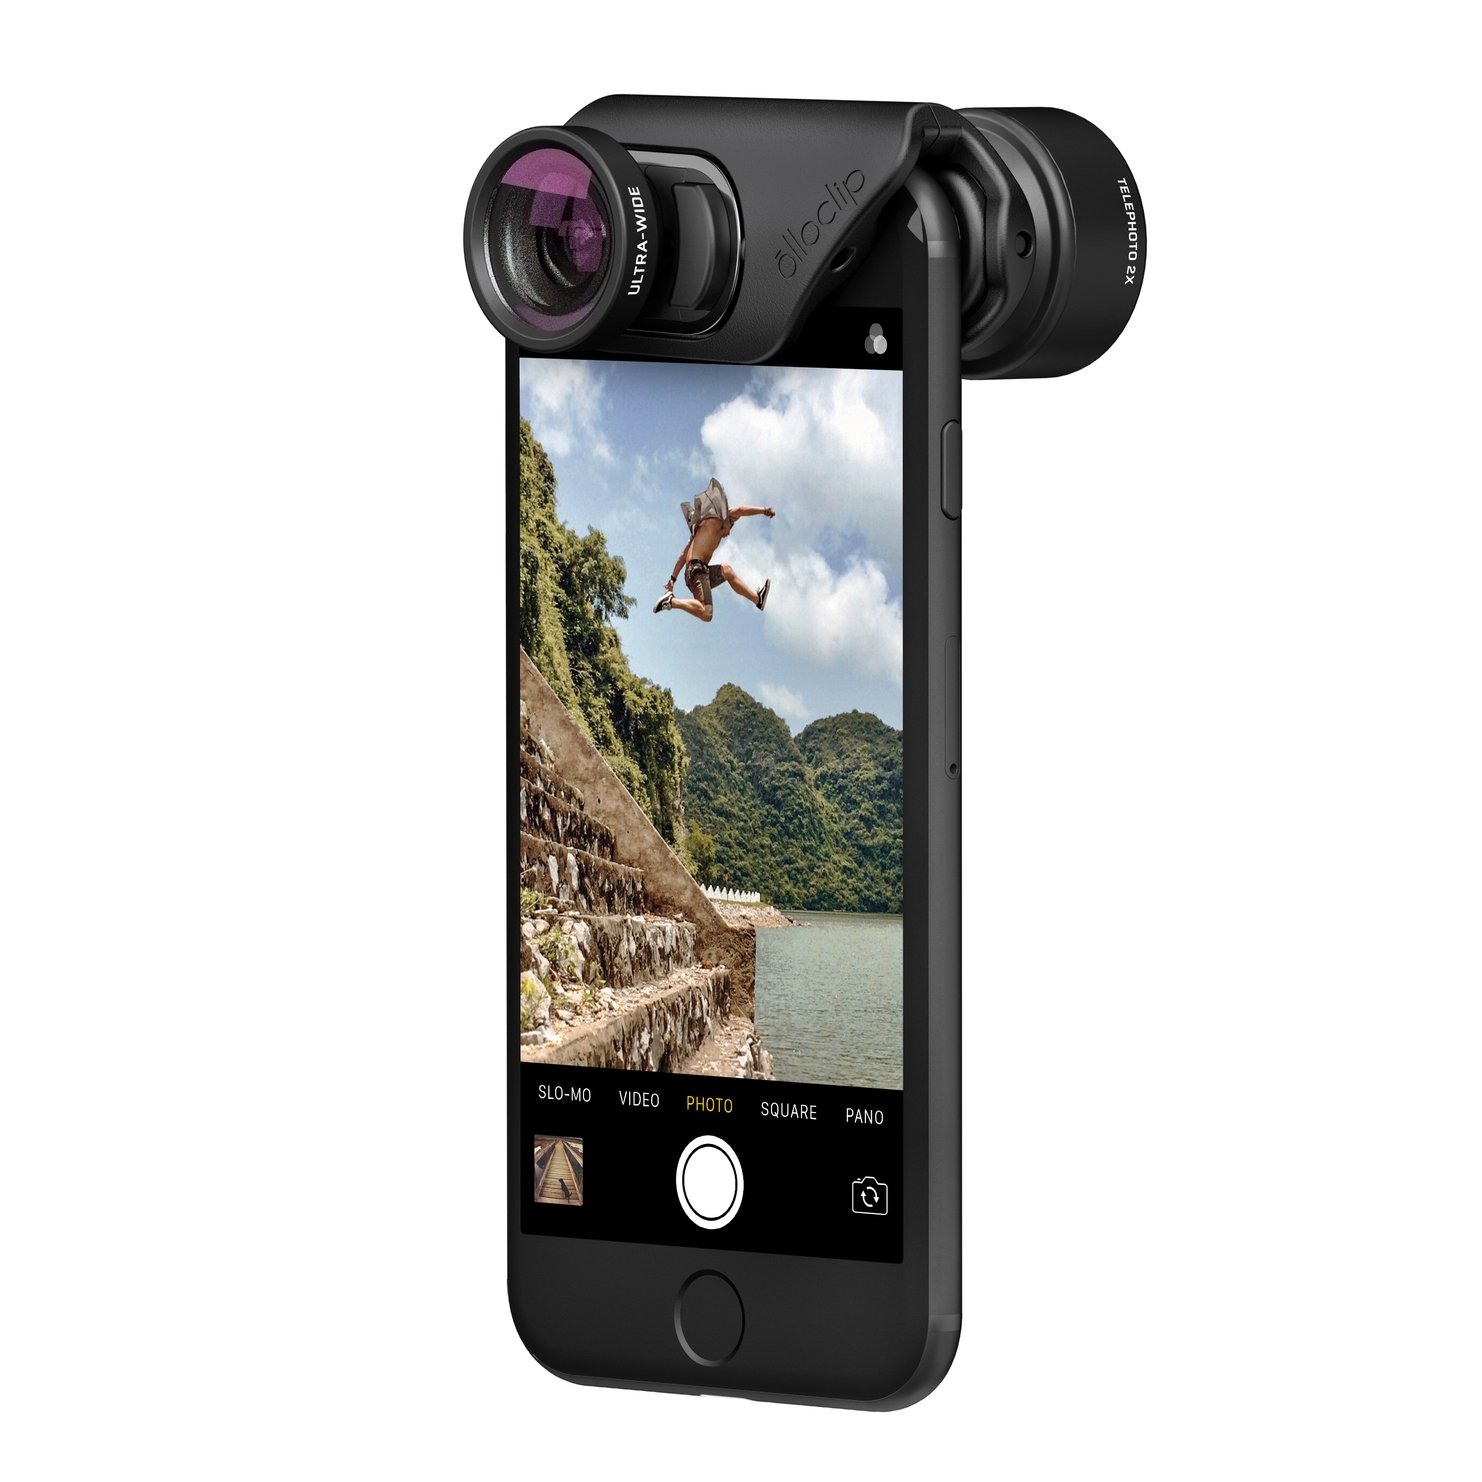 olloclip - ACTIVE LENS SET for iPhone 8/8 Plus & iPhone 7/7 Plus - TELEPHOTO & ULTRA-WIDE Premium Glass Lenses